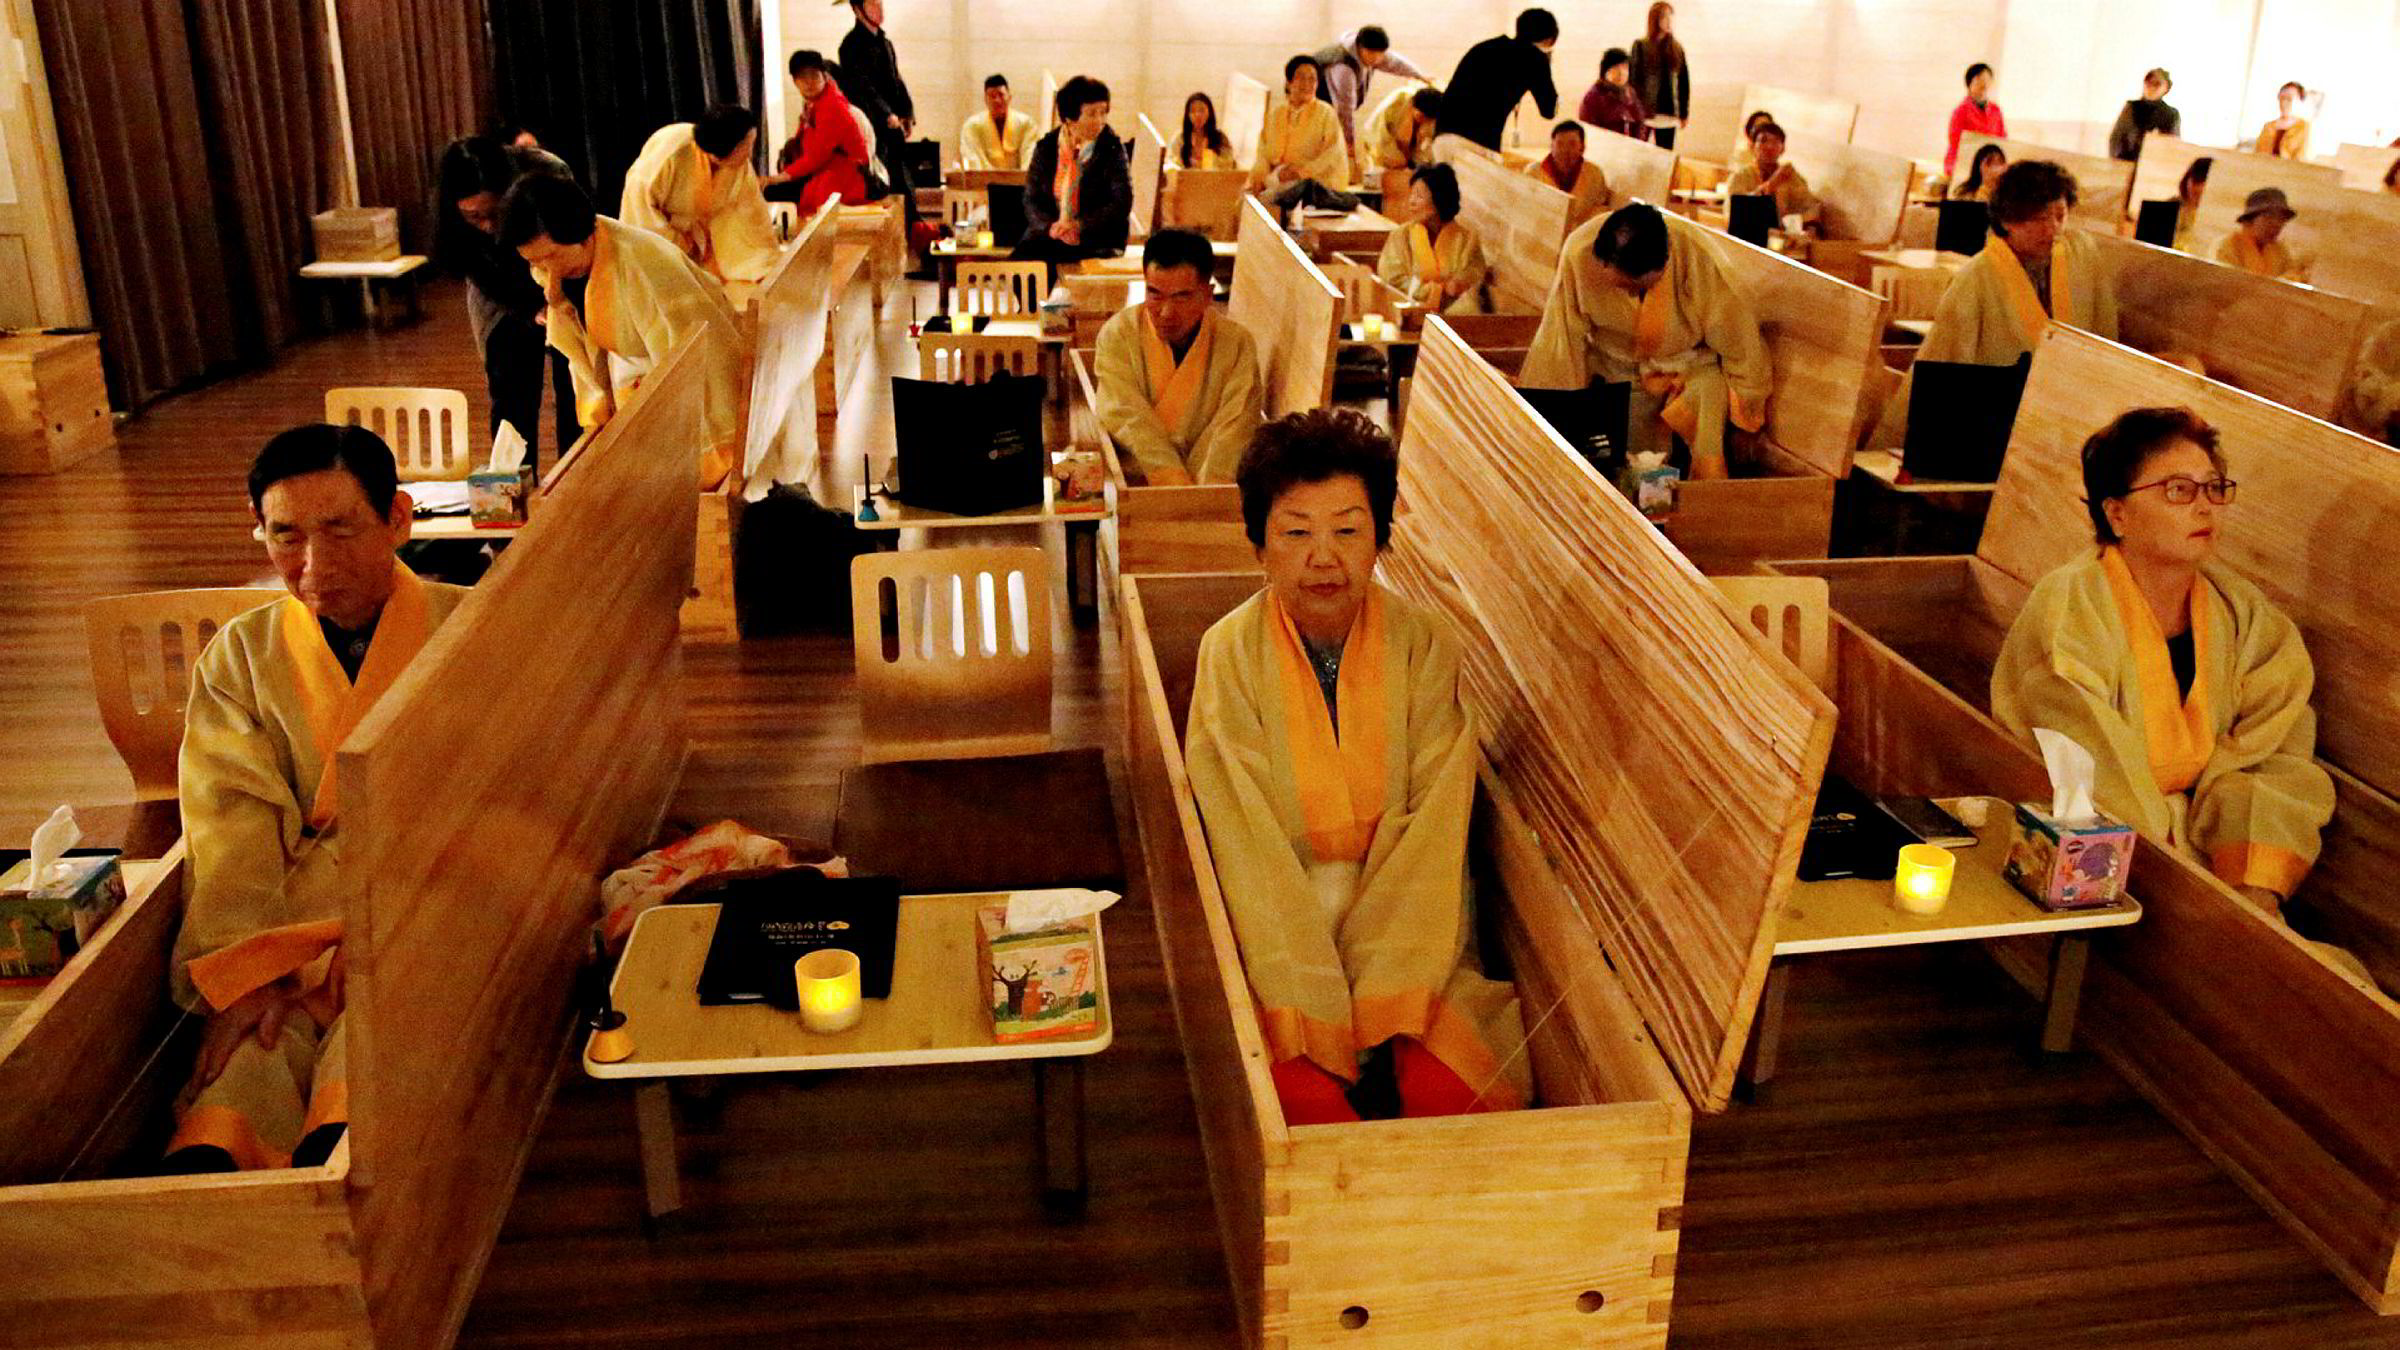 Participants sit inside coffins during a «living funeral» event as part of a «dying well» programme, in Seoul, South Korea, October 31, 2019. Picture taken on October 31, 2019. REUTERS/Heo Ran TPX IMAGES OF THE DAY ---